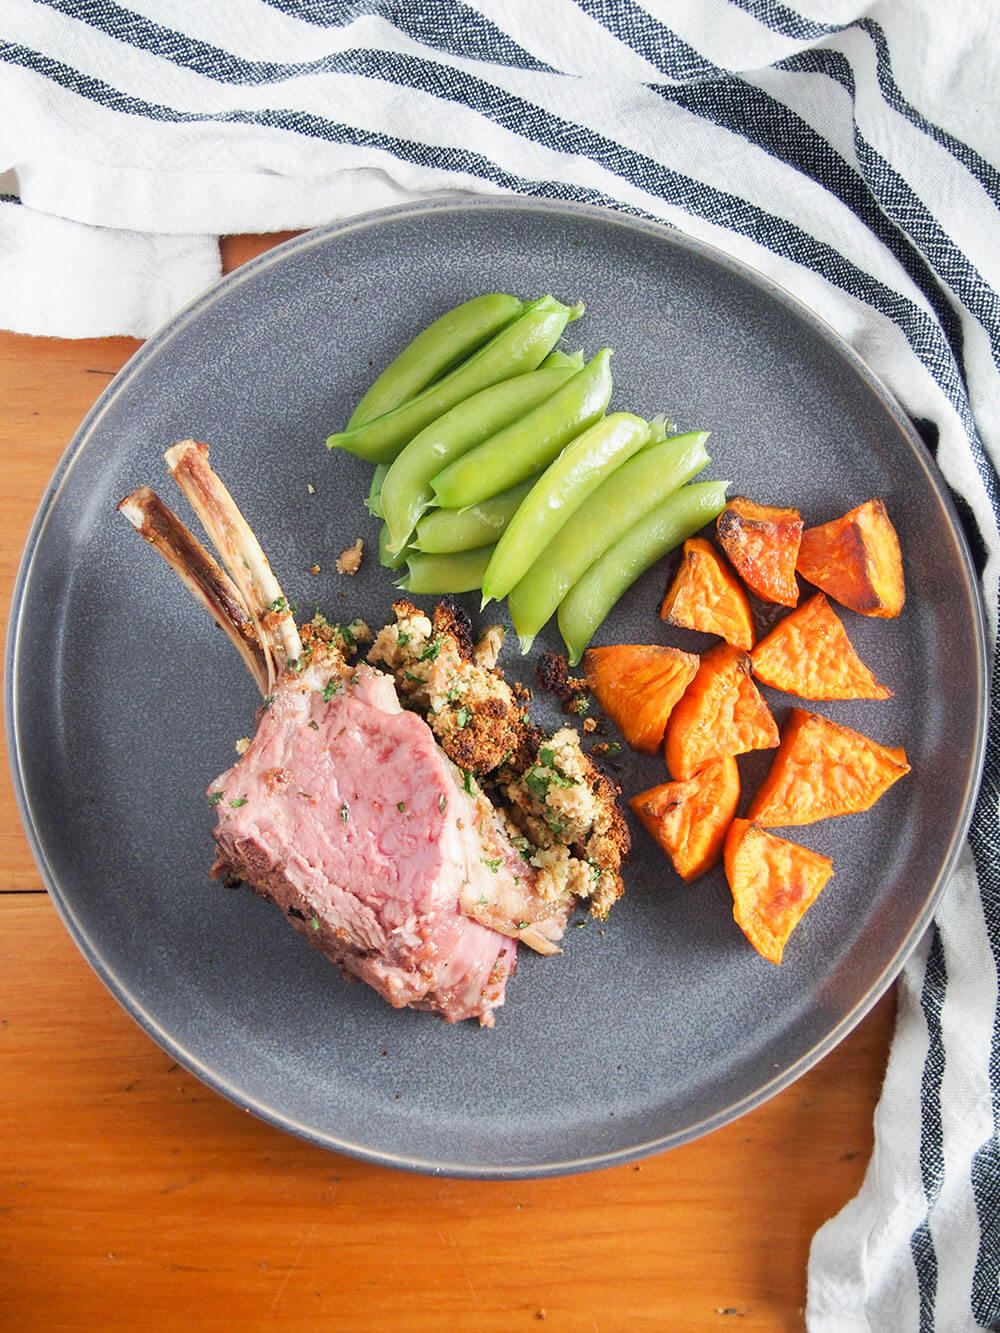 Garlic herb crusted rack of lamb on plate